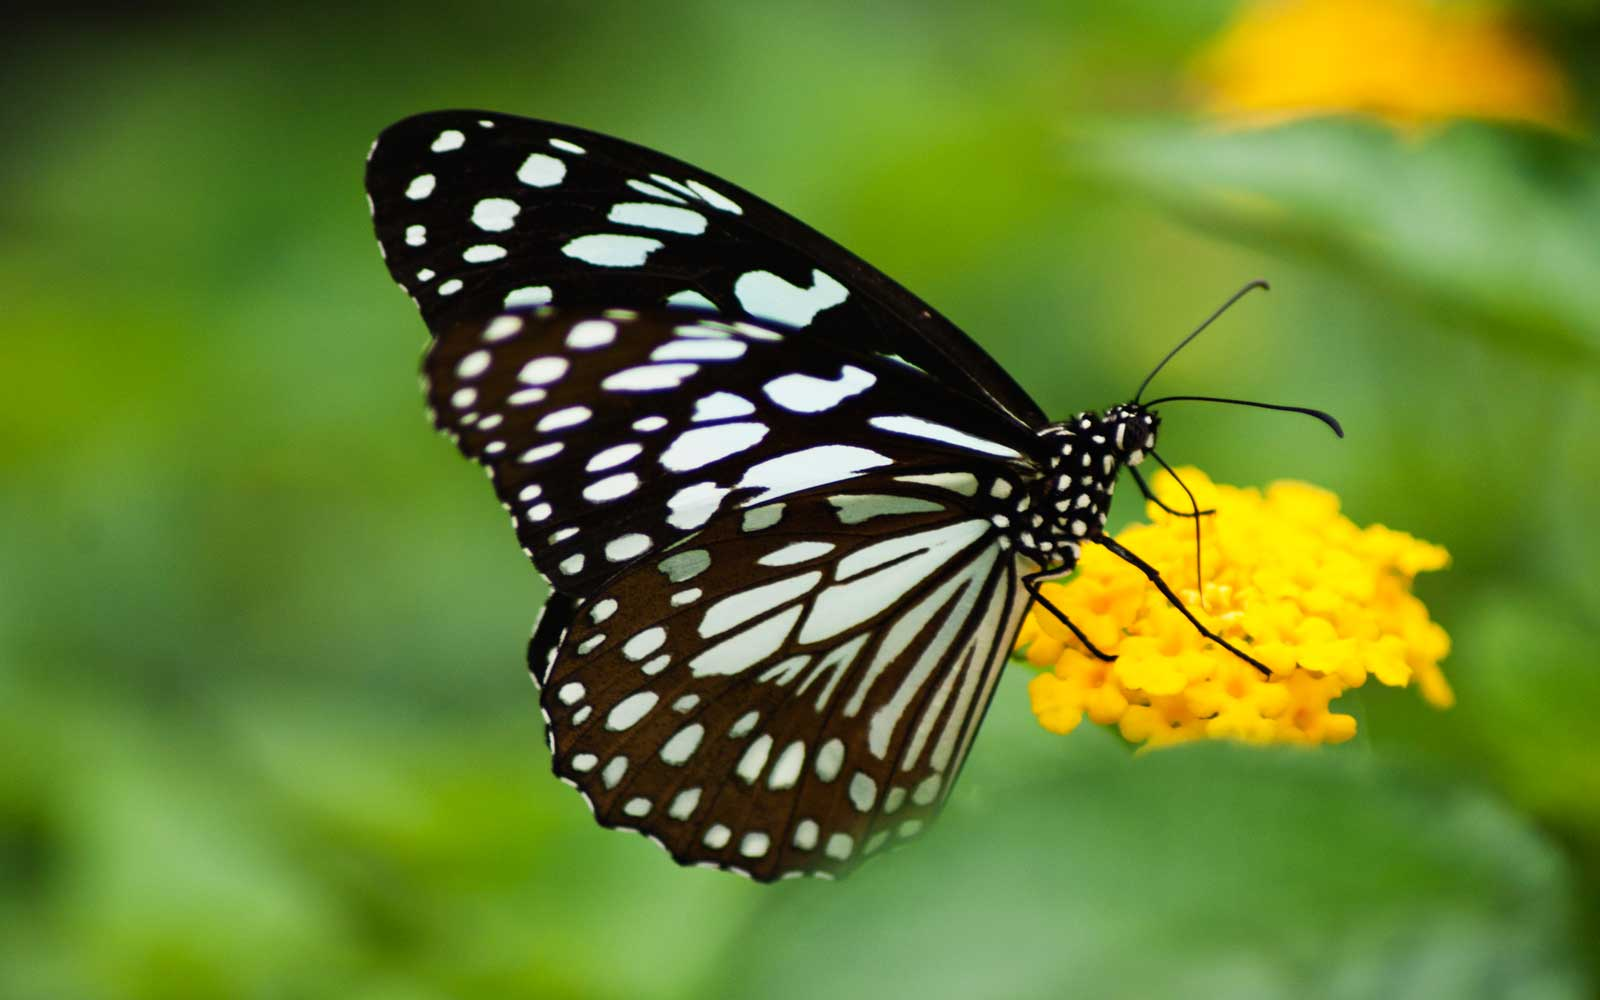 If You Want to Be Surrounded By Butterflies, Head to This National Park